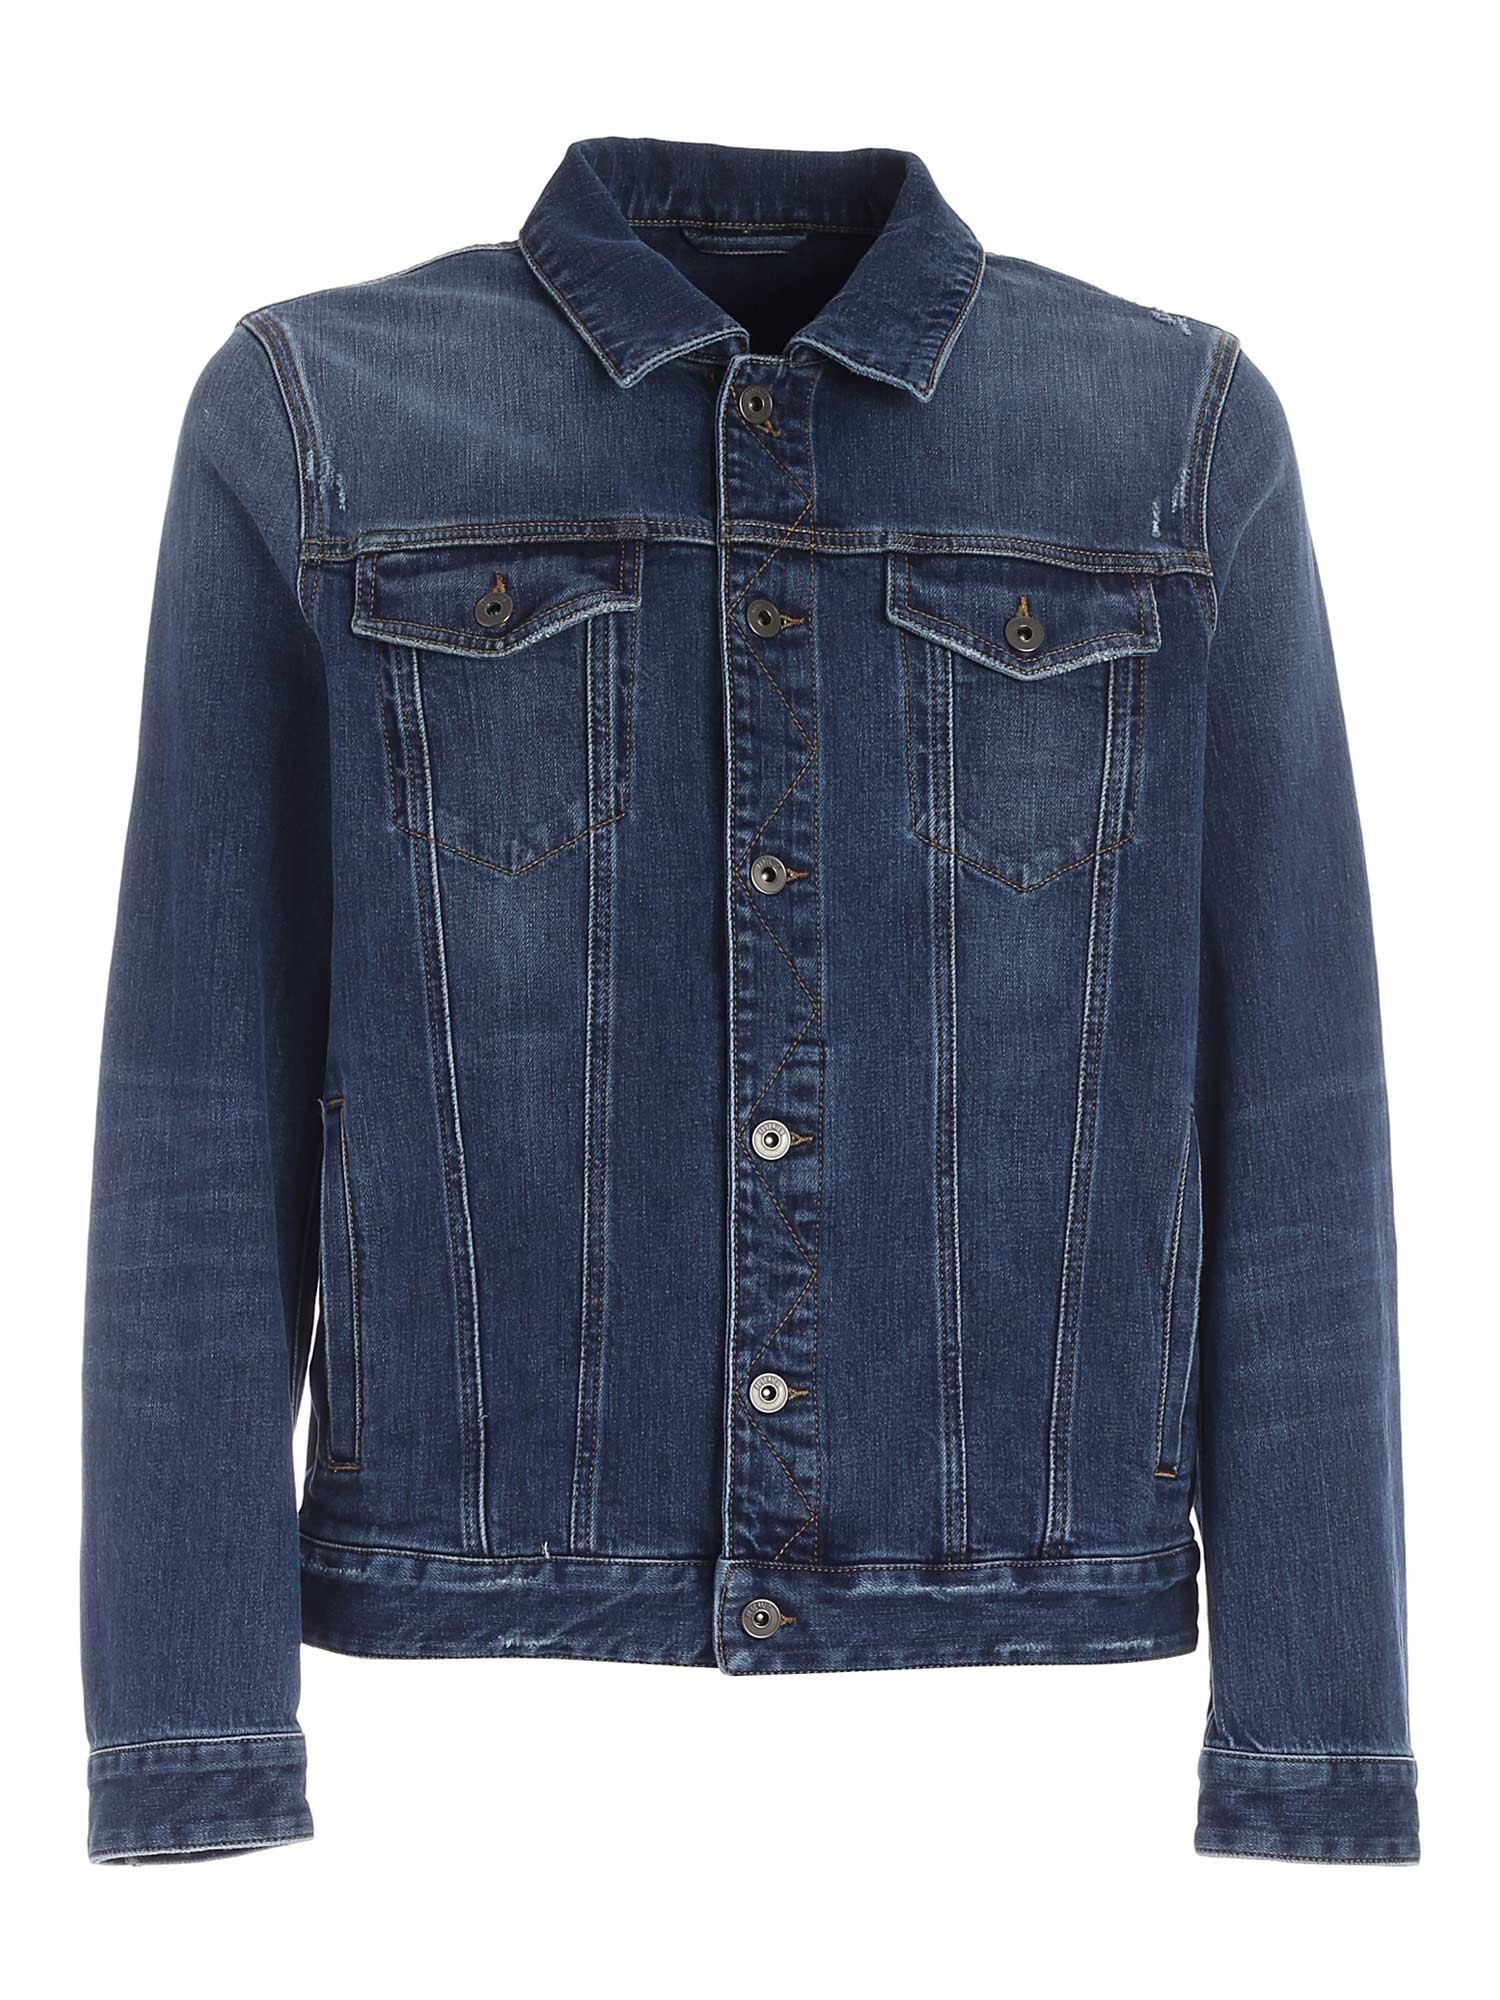 Peserico WORN-EFFECT DENIM JACKET IN BLUE